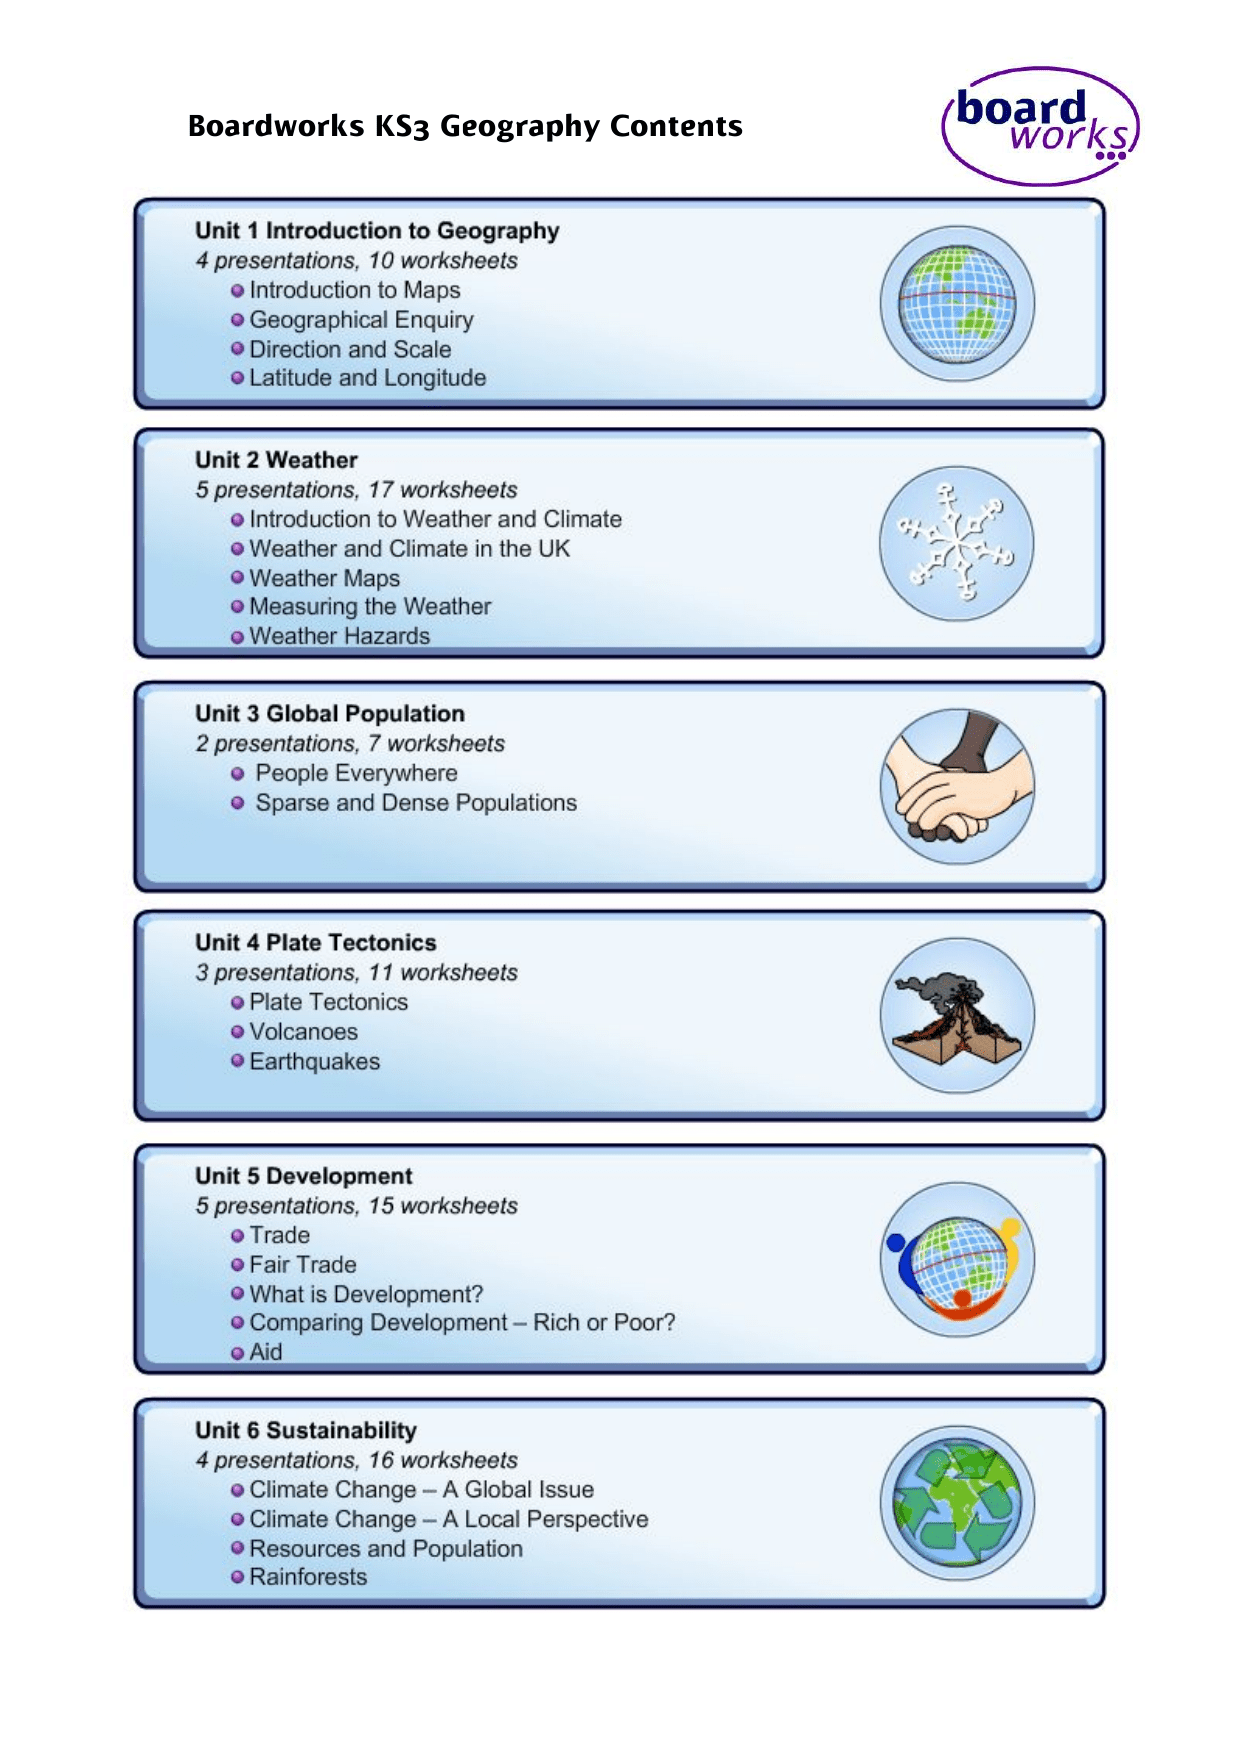 Boardworks Ks3 Geography Contents